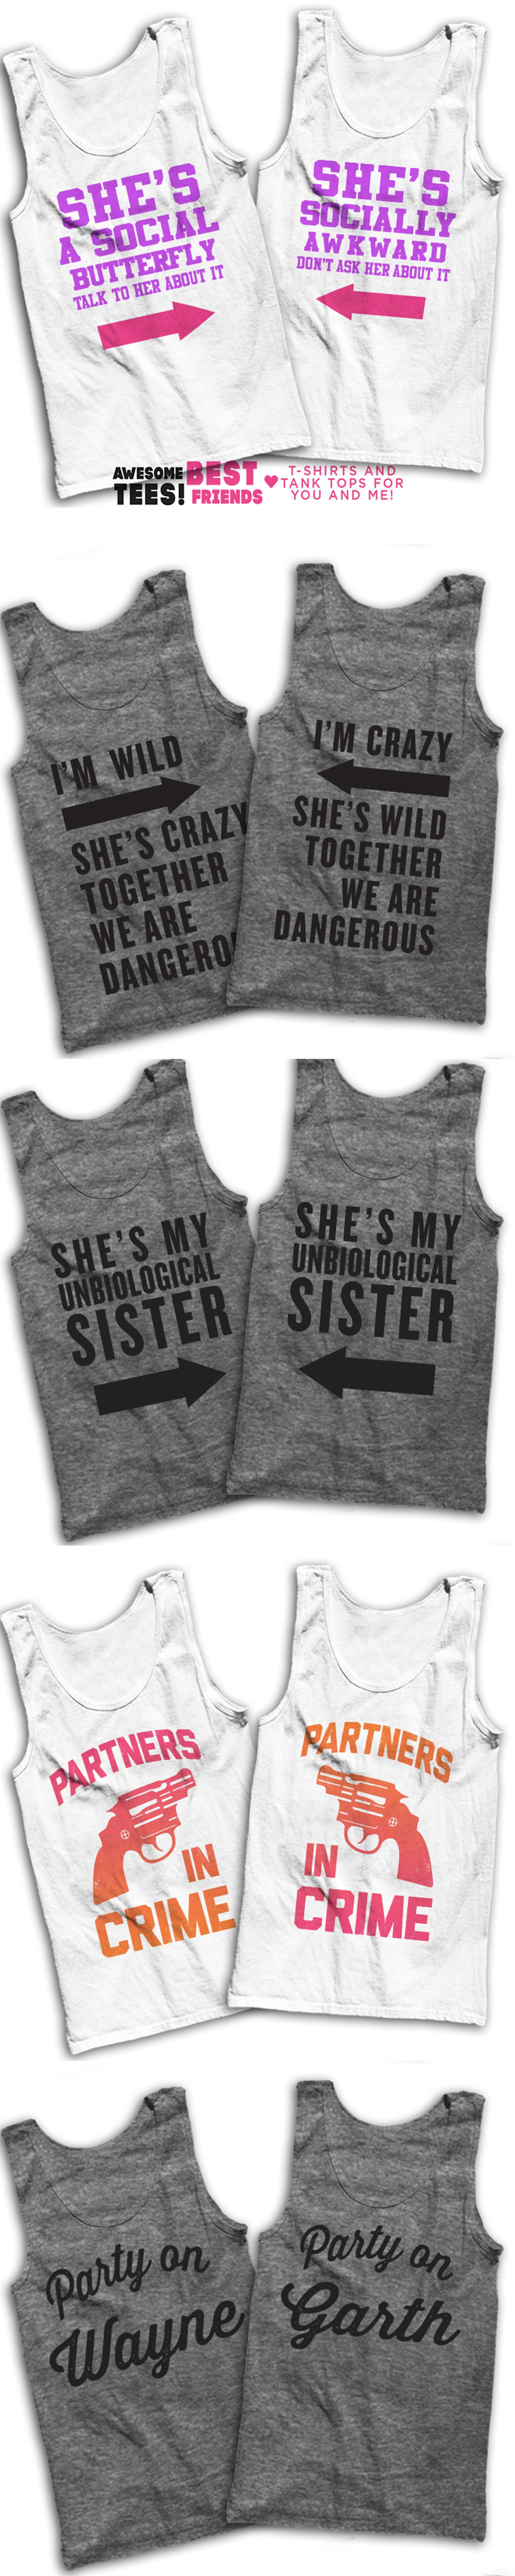 5ec45dbe 5 Awesome Matching T Shirts For You And Your Best Friend! While you're in  check out our sarcastic lazy shirts for that cheat day, or grab a matching  shirt ...